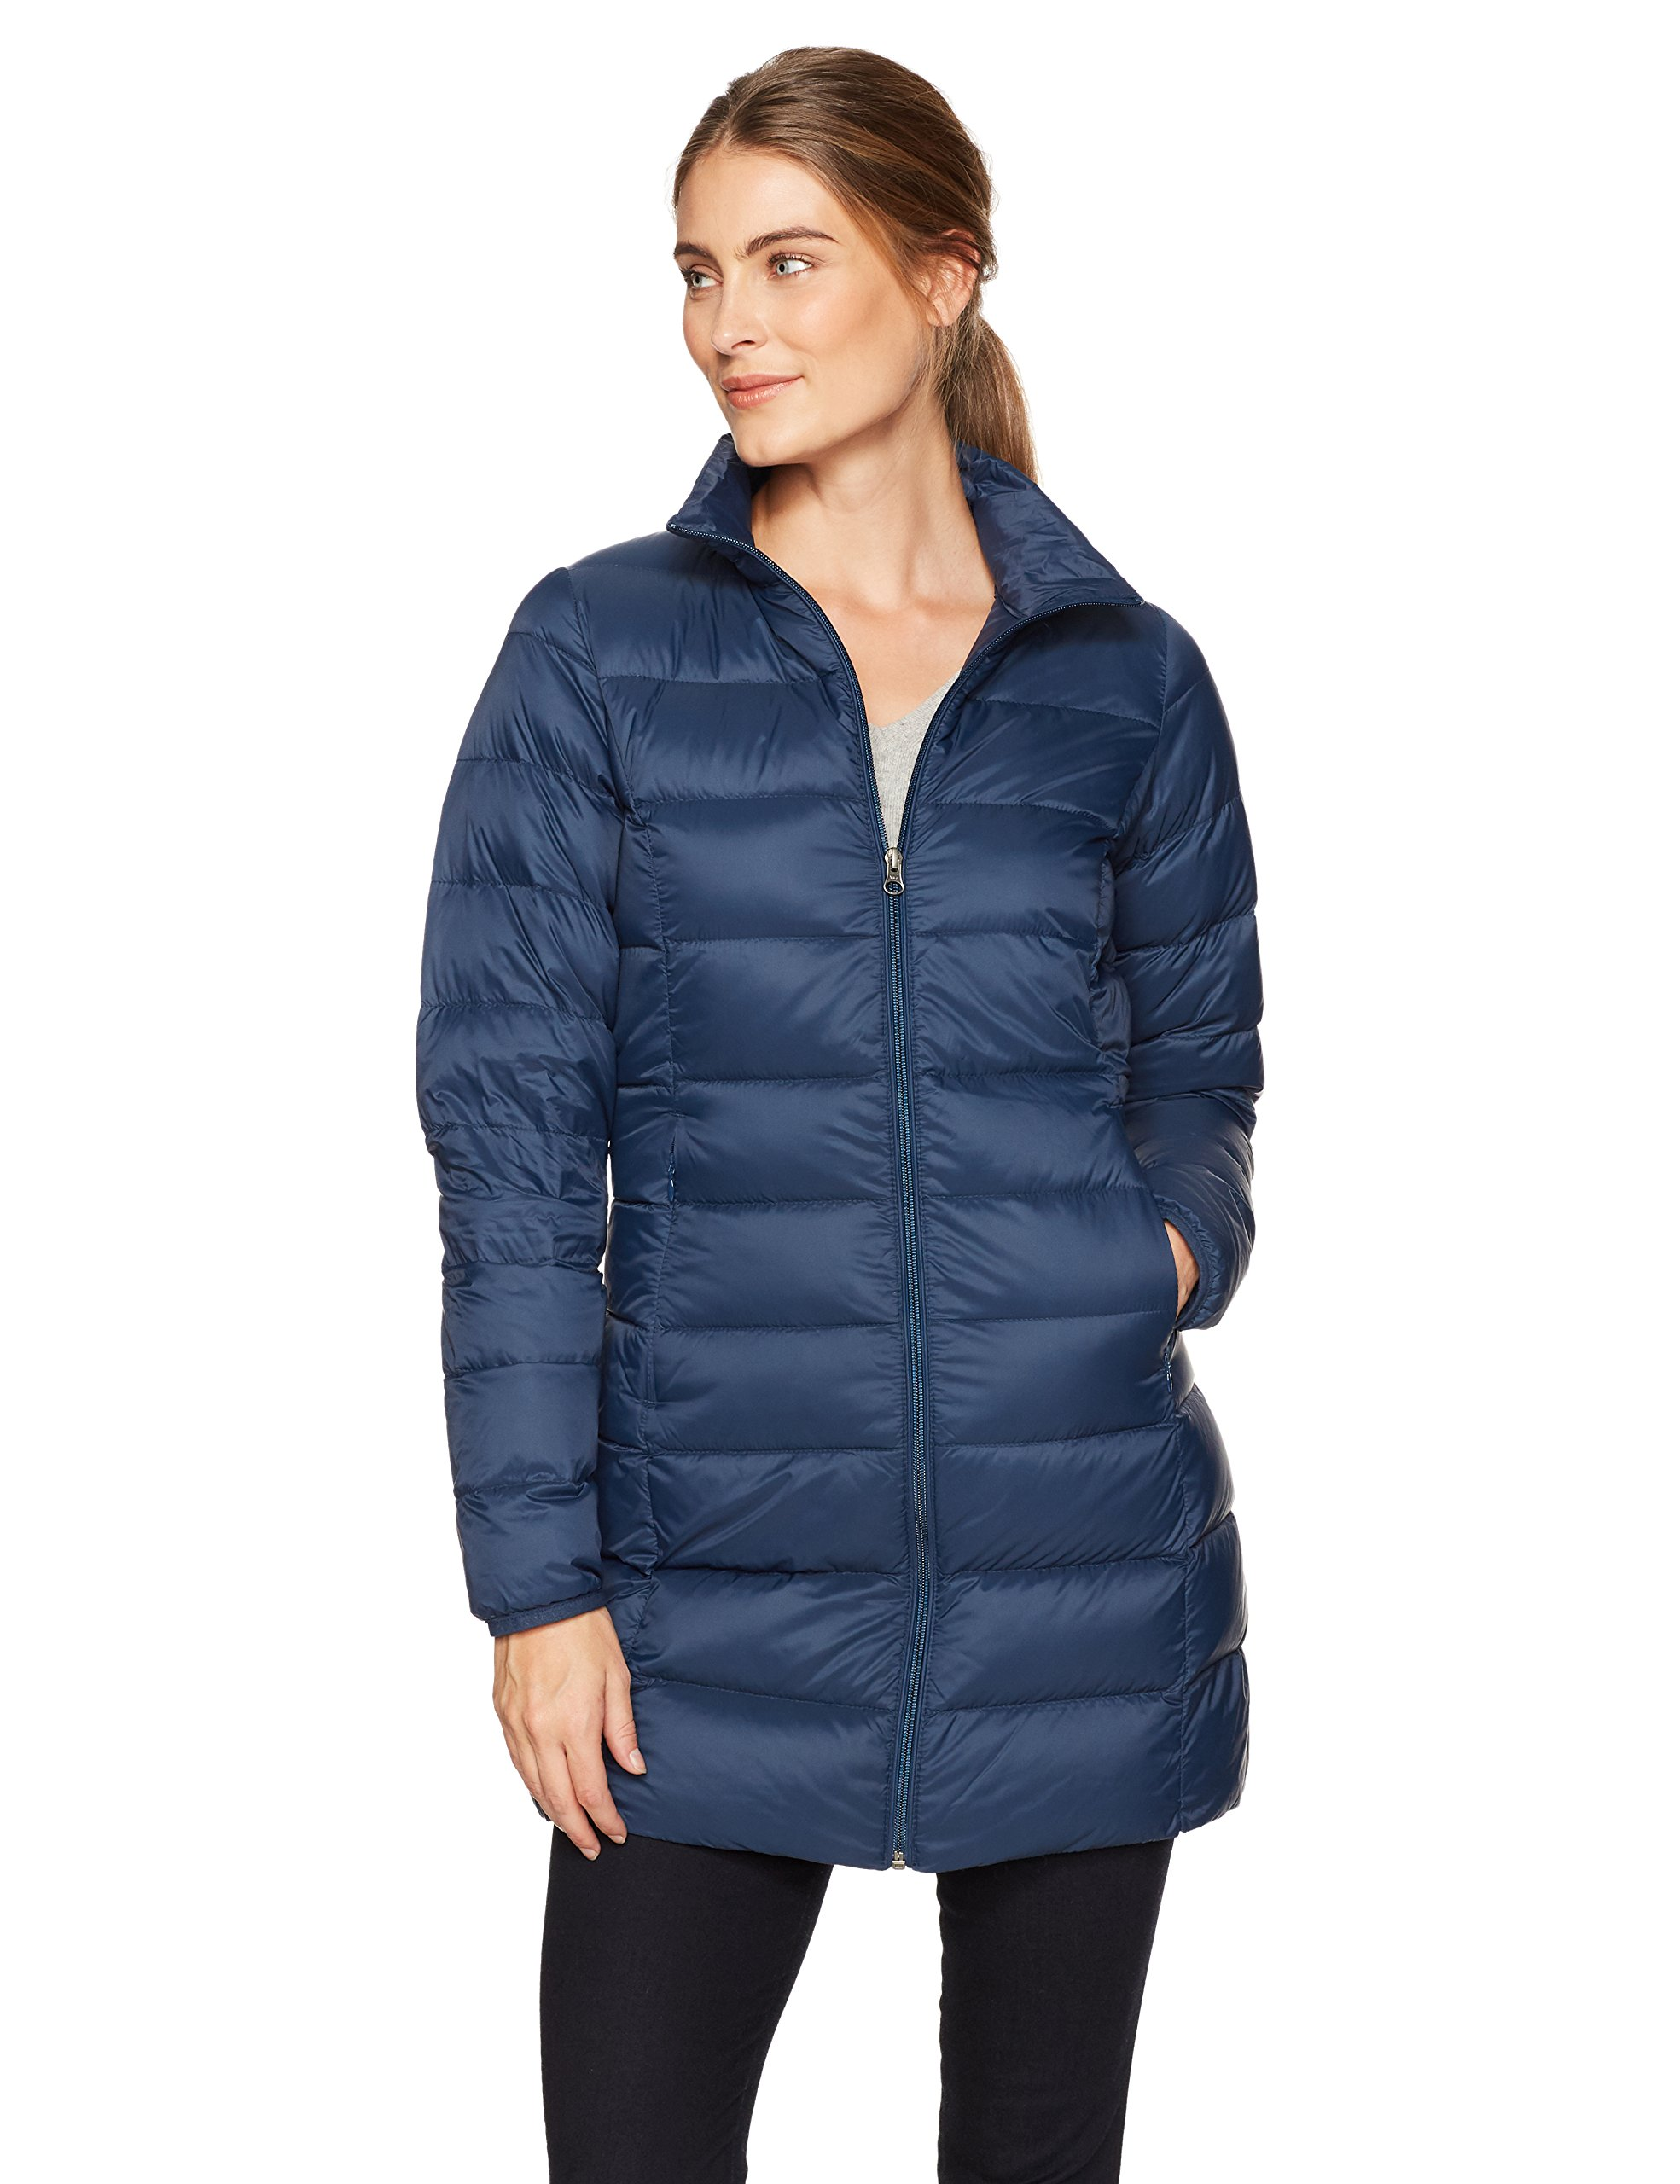 Amazon Essentials Women's Lightweight Water-Resistant Packable Down Coat, Navy, X-Large